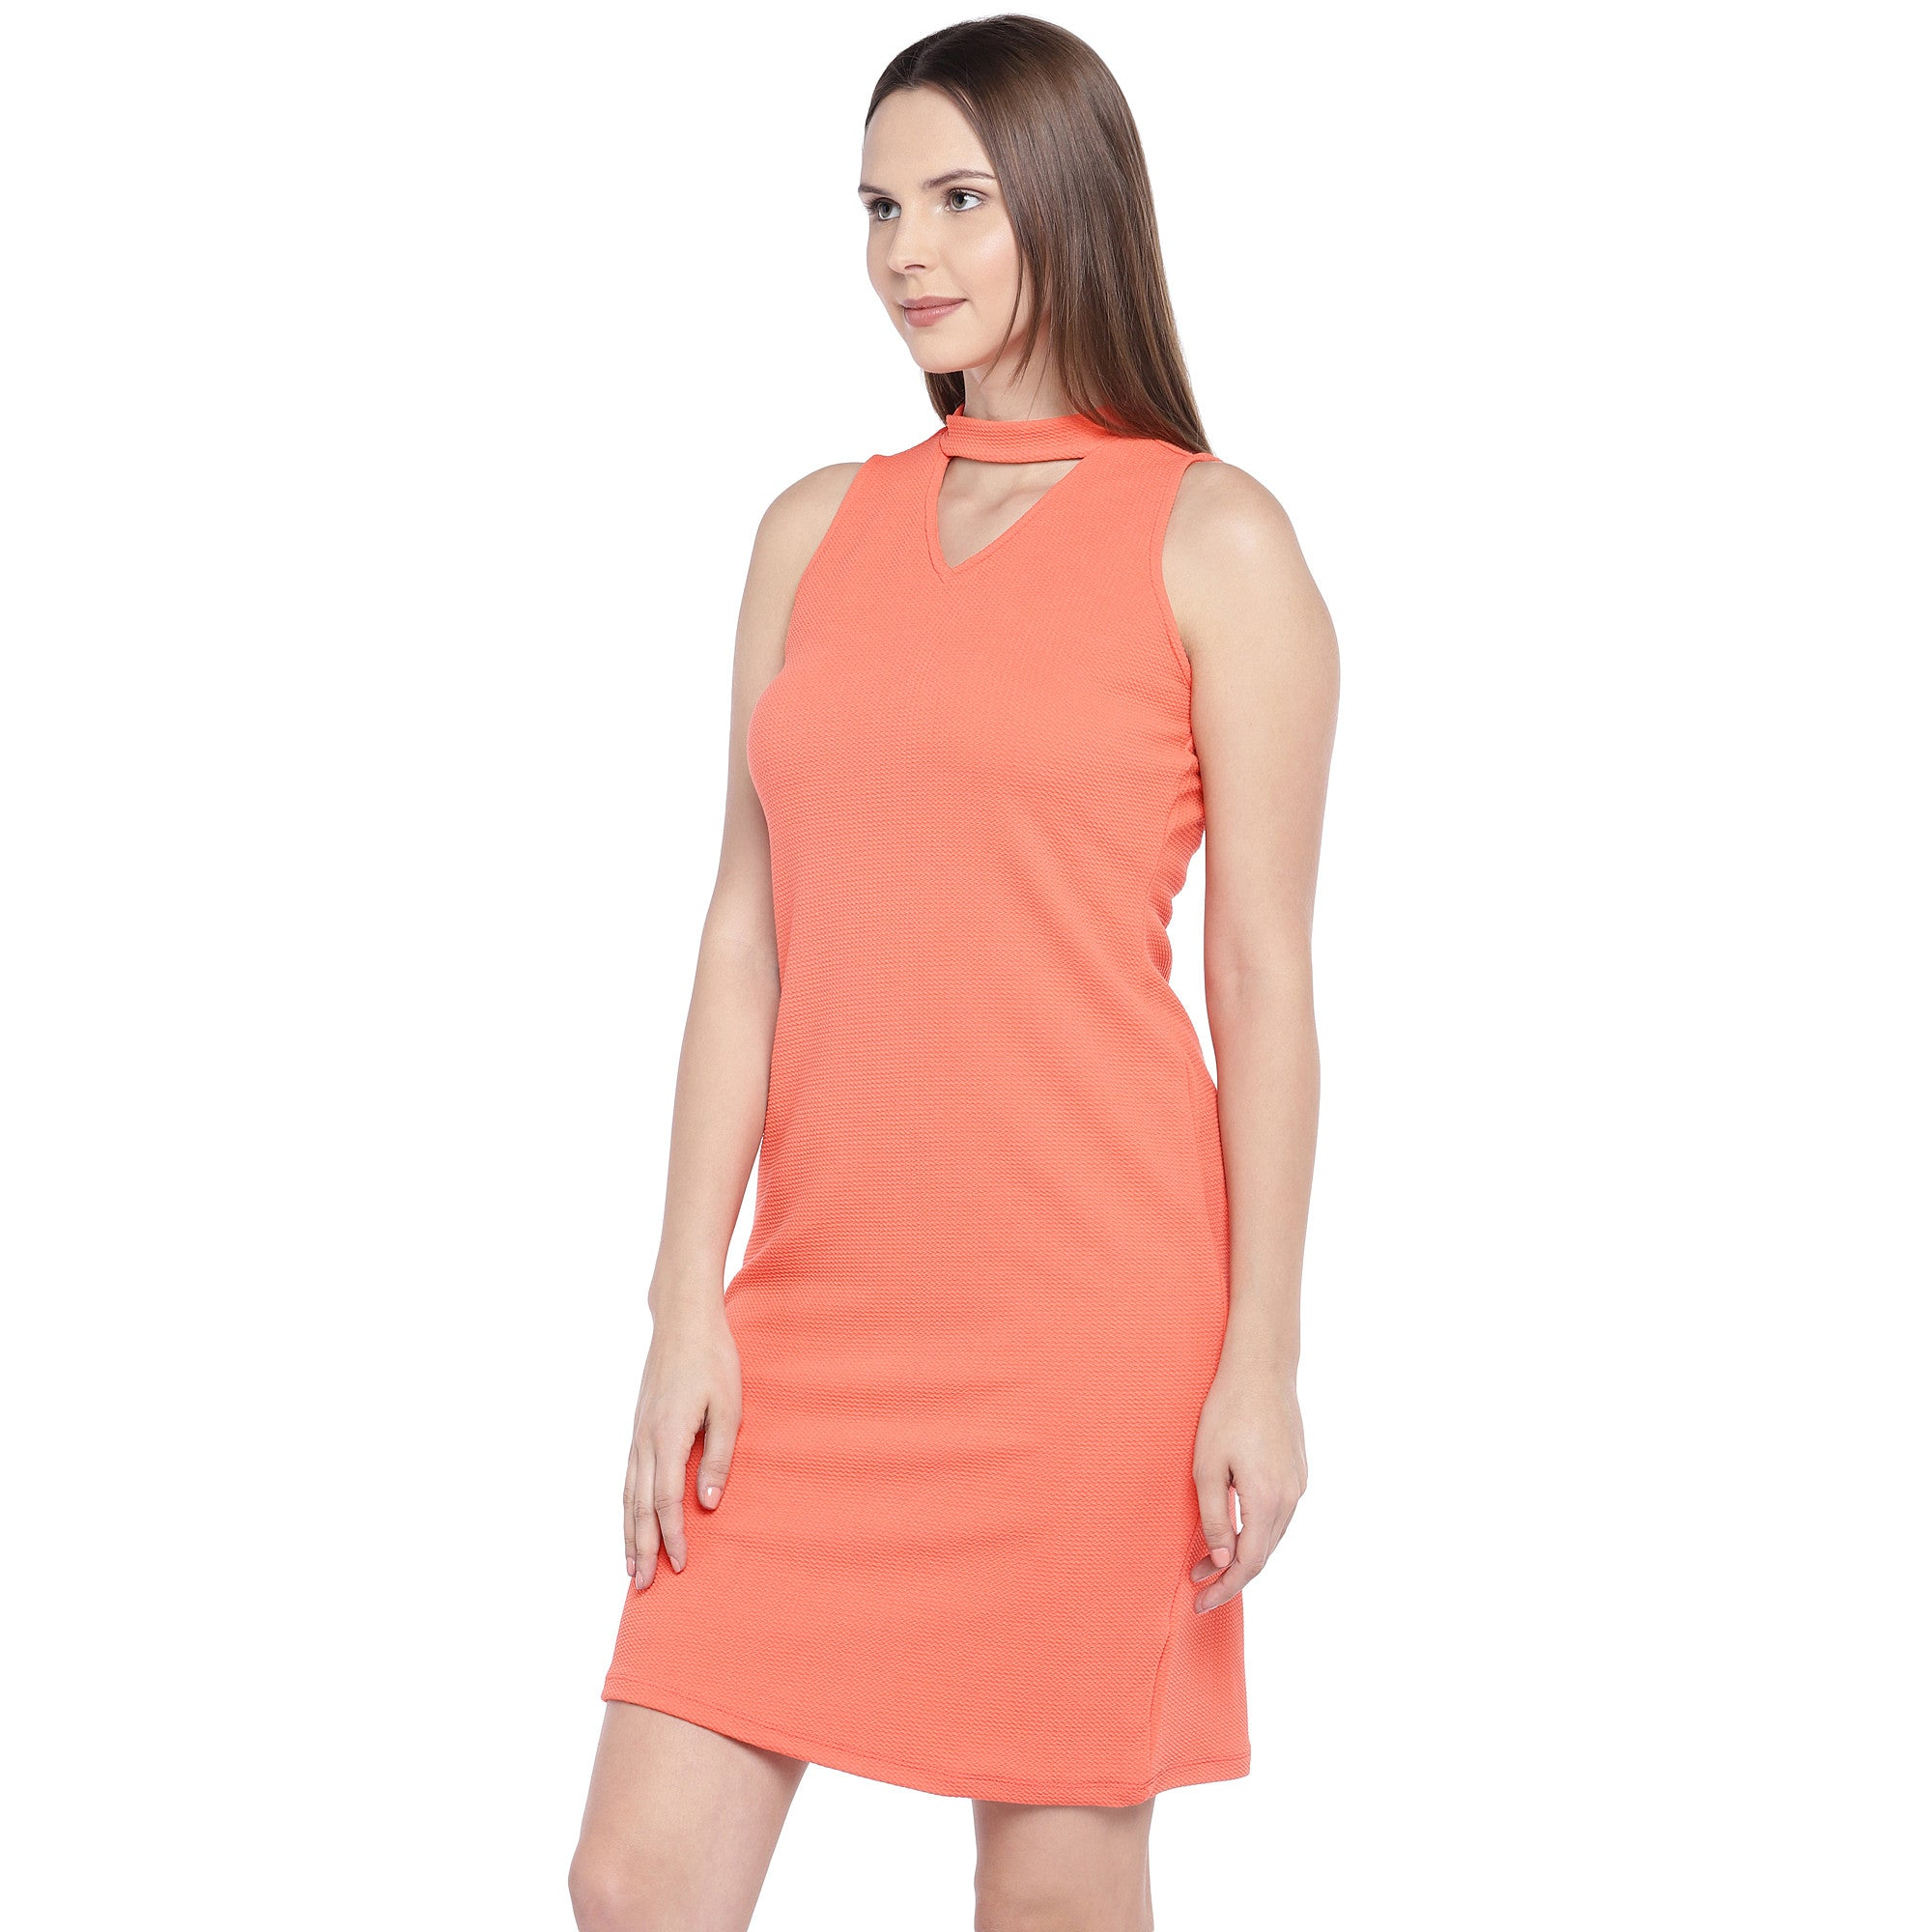 Coral Orange Self Design Sheath Dress-2